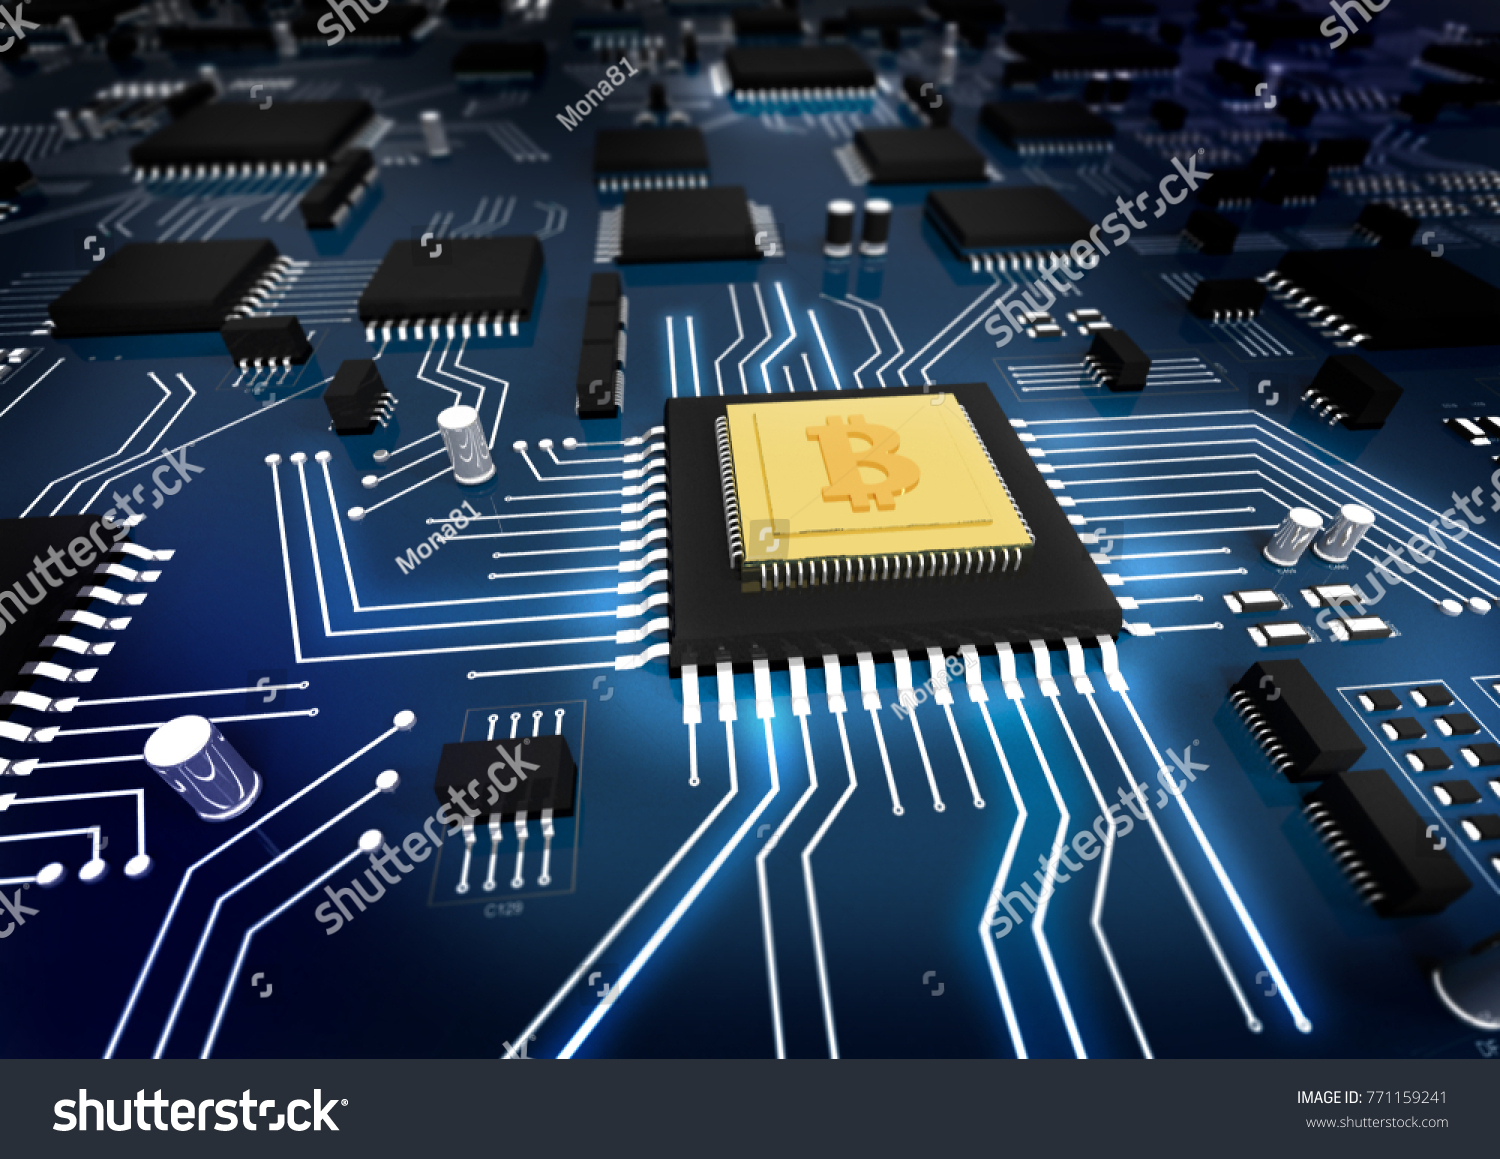 Bitcoin Concept Printed Circuit Board Stock Illustration Photos Images Pictures Shutterstock With Processor And Microchips 3d